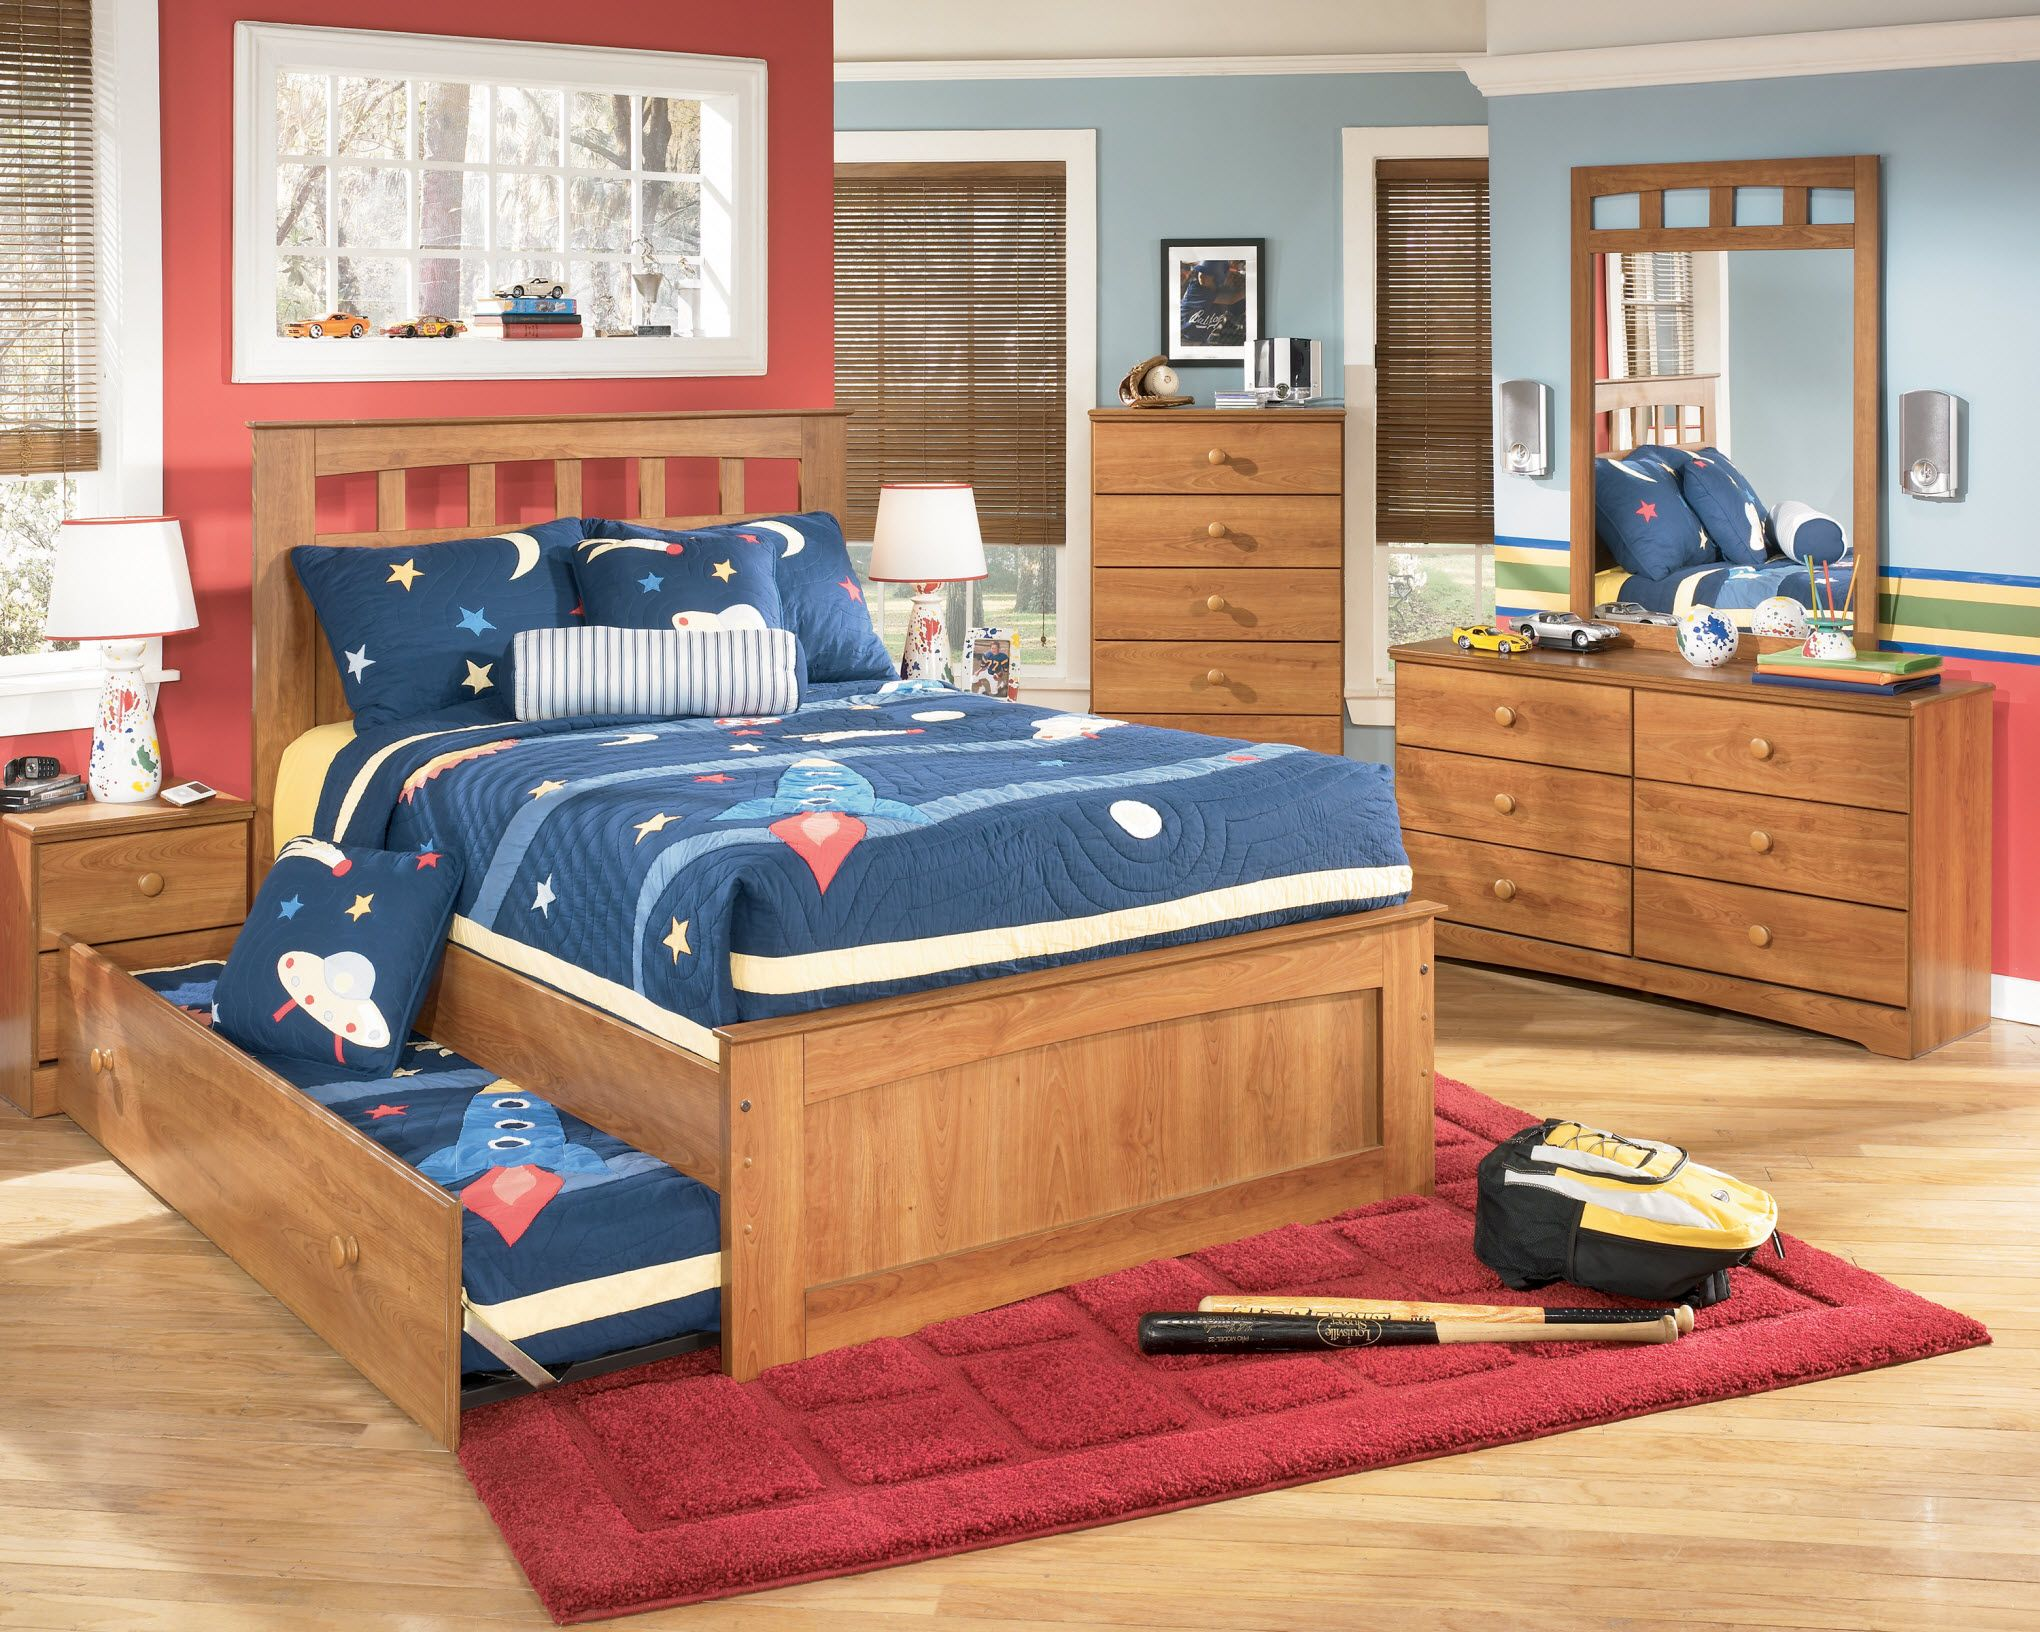 1000 images about kids beds bedroom stuff on pinterest boys bedroom furniture childrens bedroom furniture and kids bedroom furniture boys bedroom furniture